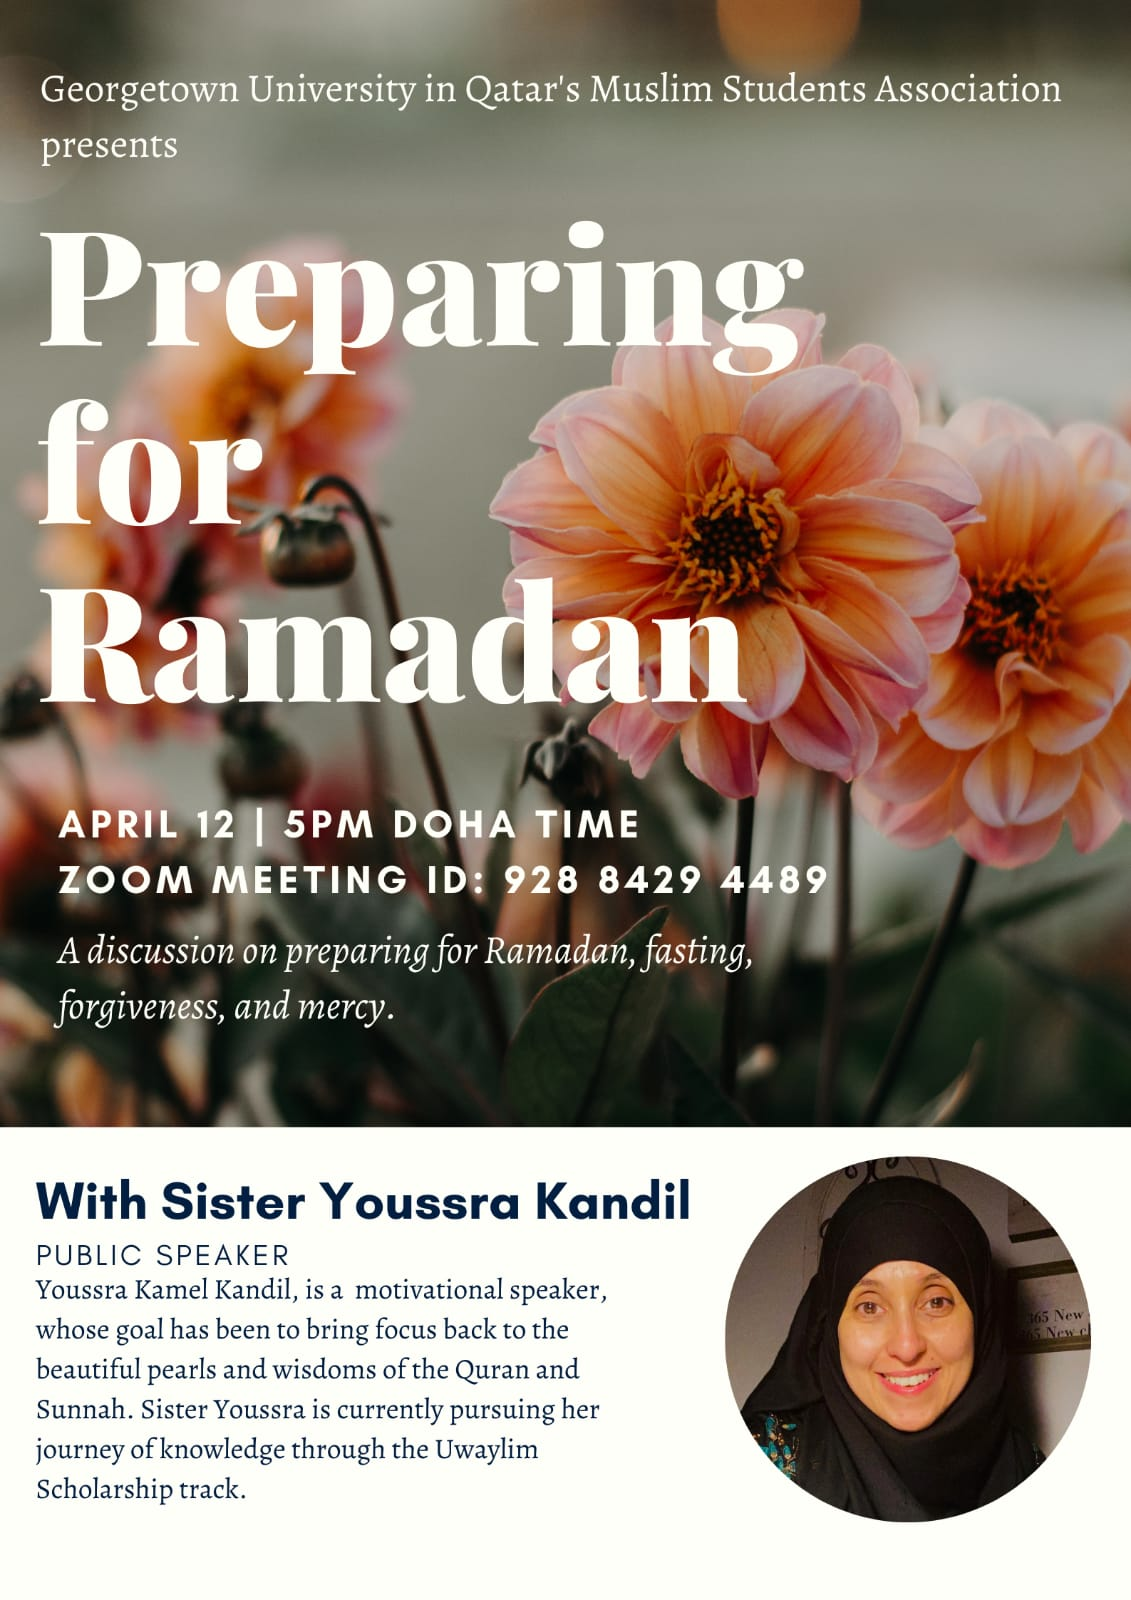 Poster with image of flowers and the title of the event as well as a small picture of the speaker at the bottom and a brief description of her background